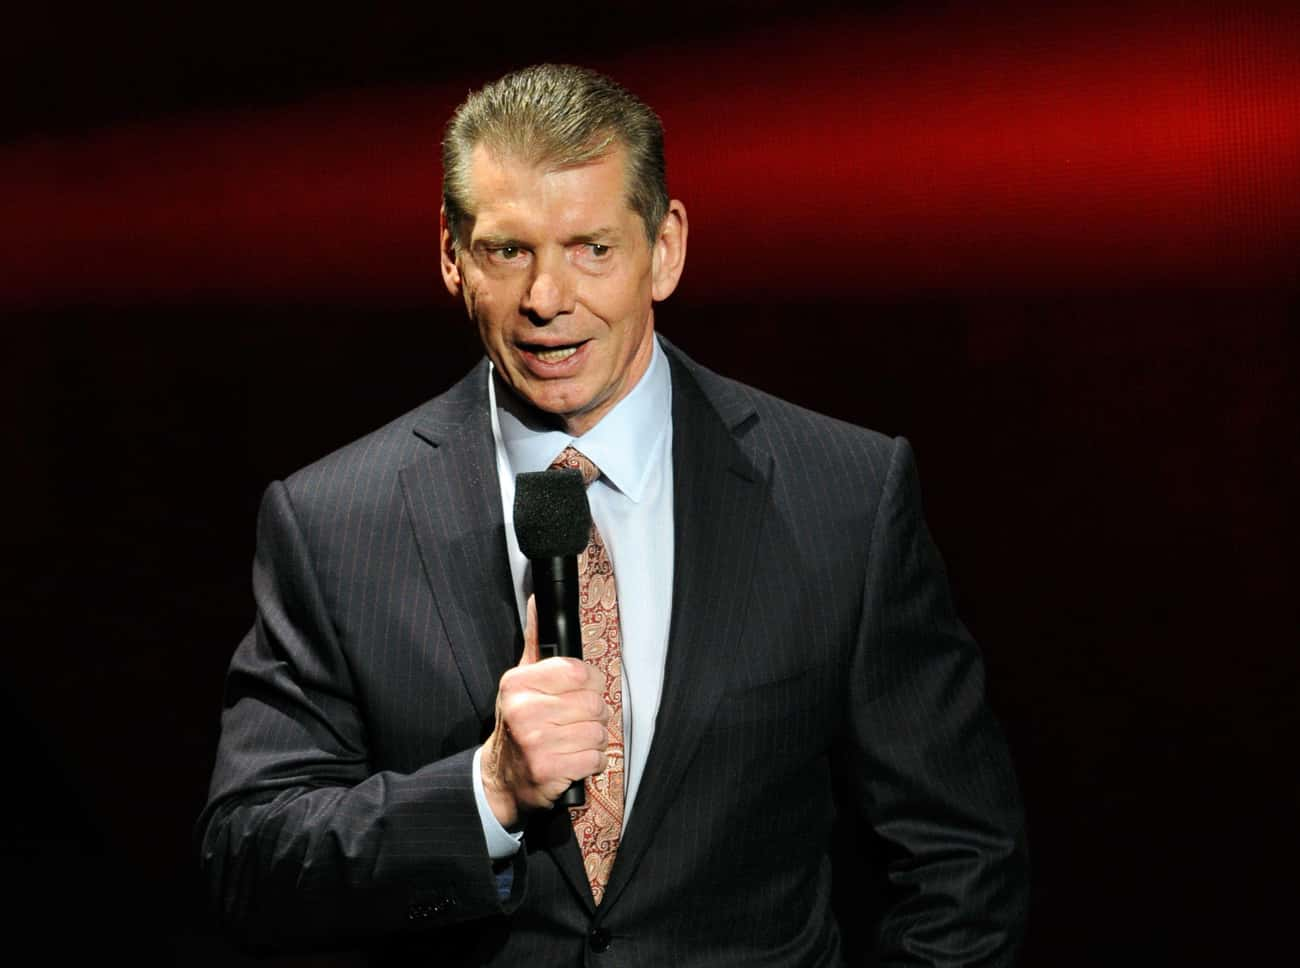 He Was Accused Of Sexual Haras is listed (or ranked) 4 on the list Whatever Happened To Vince McMahon?